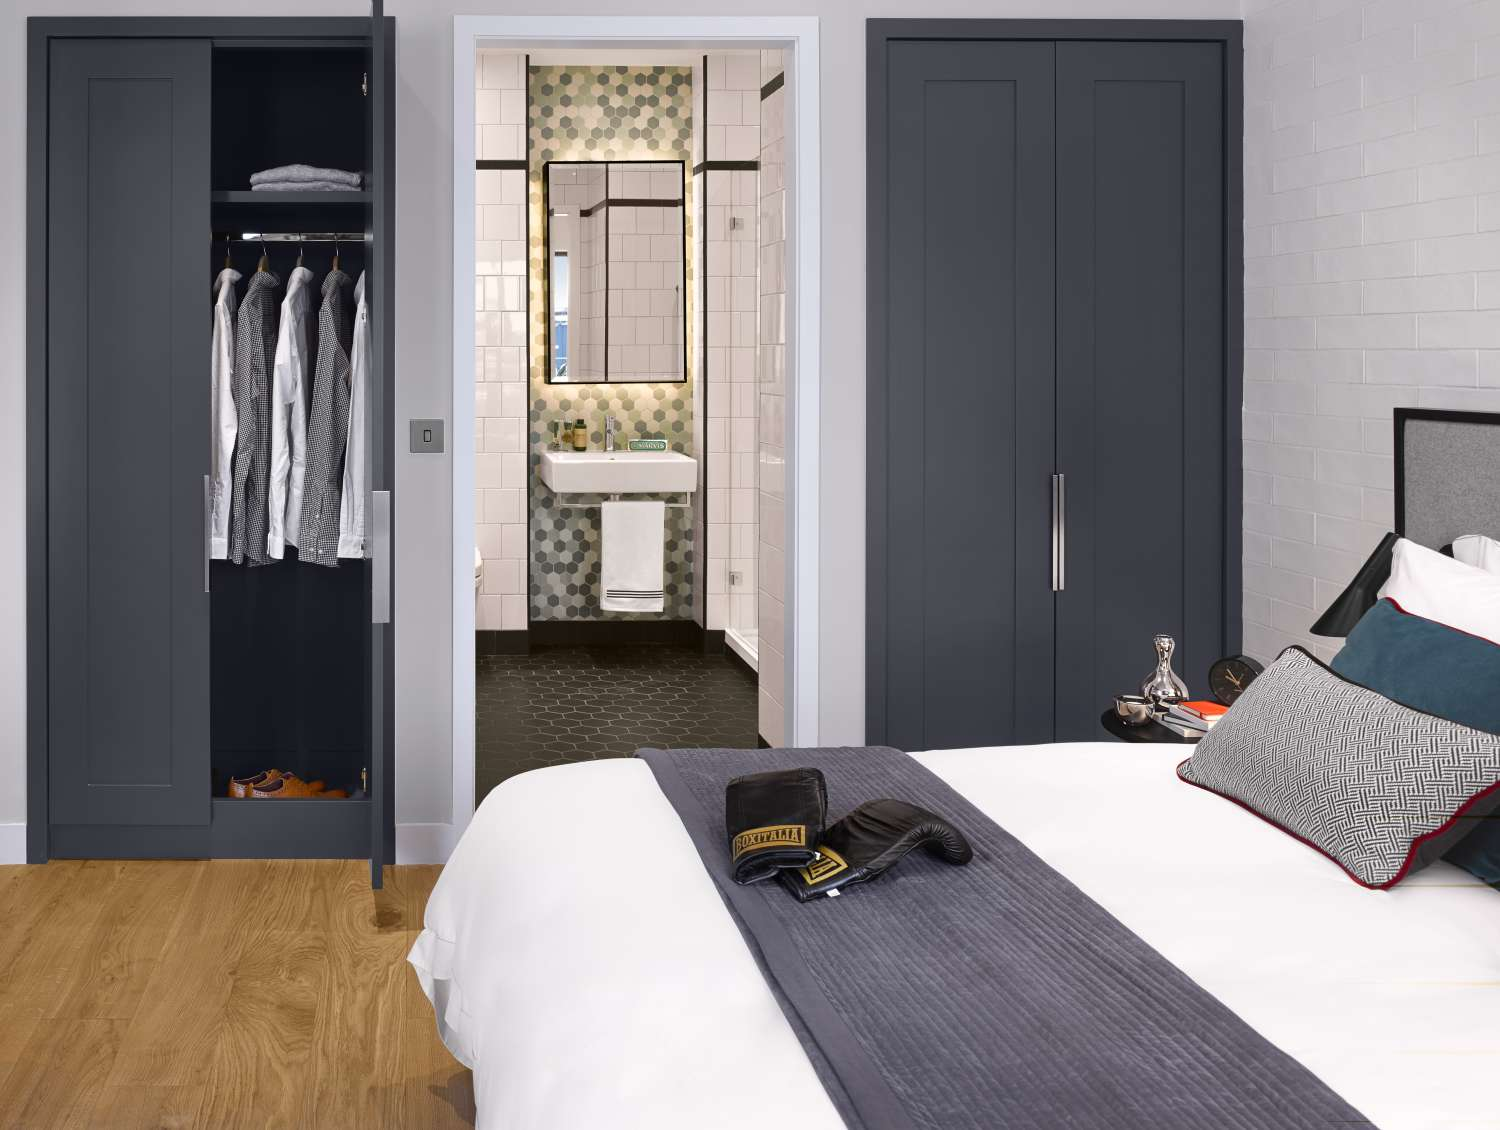 Show Apartment Bedroom With Fitted Wardrobes